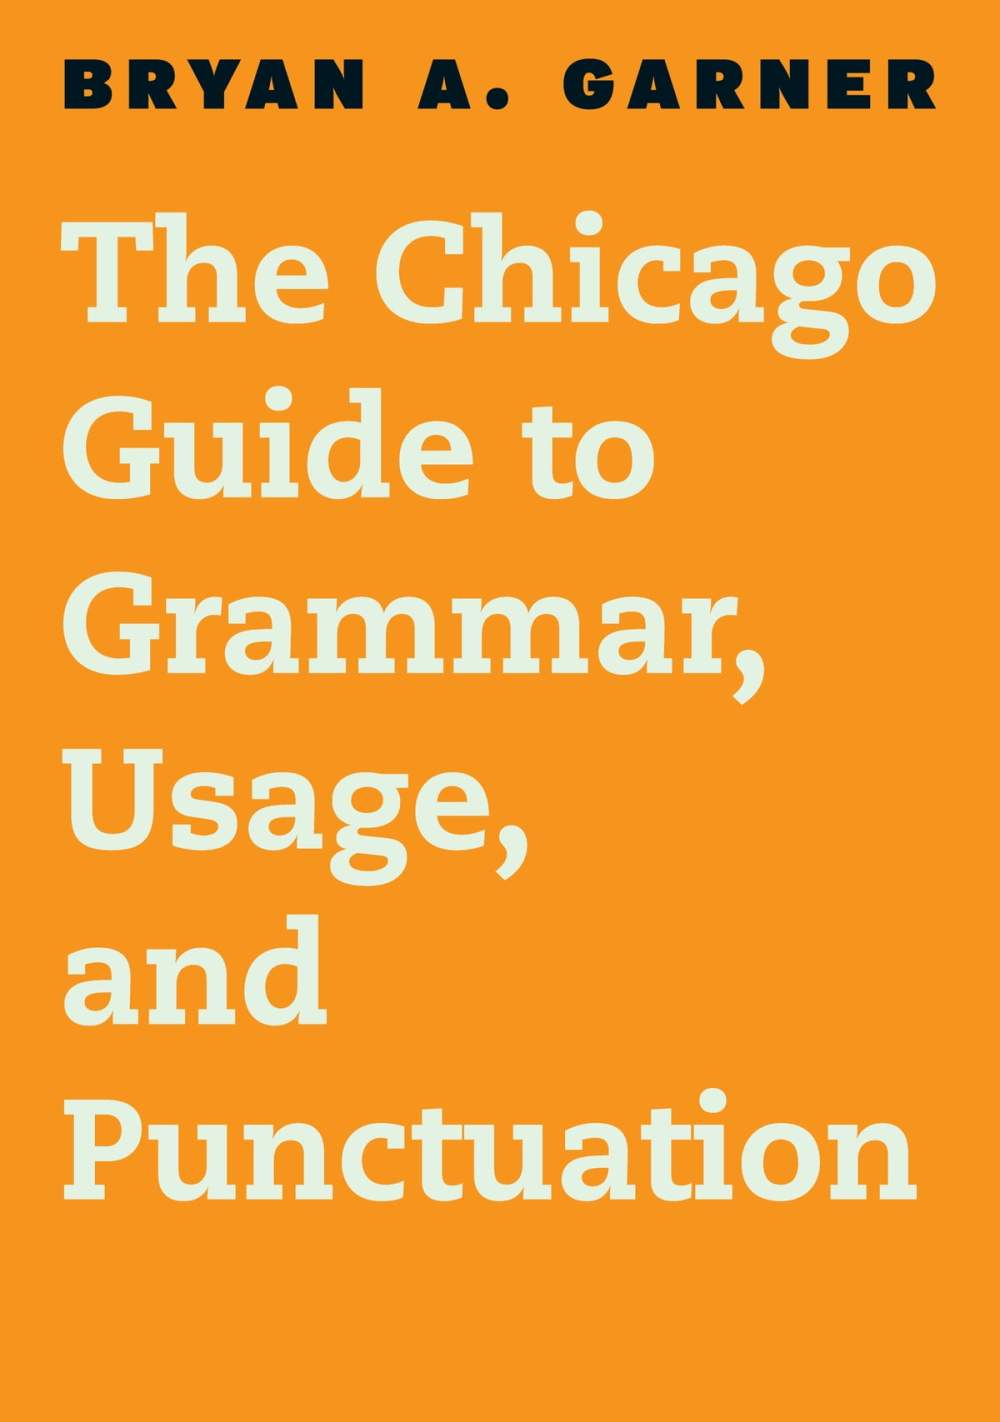 medium resolution of the chicago guide to grammar usage and punctuation ebook by bryan a garner 9780226191294 rakuten kobo